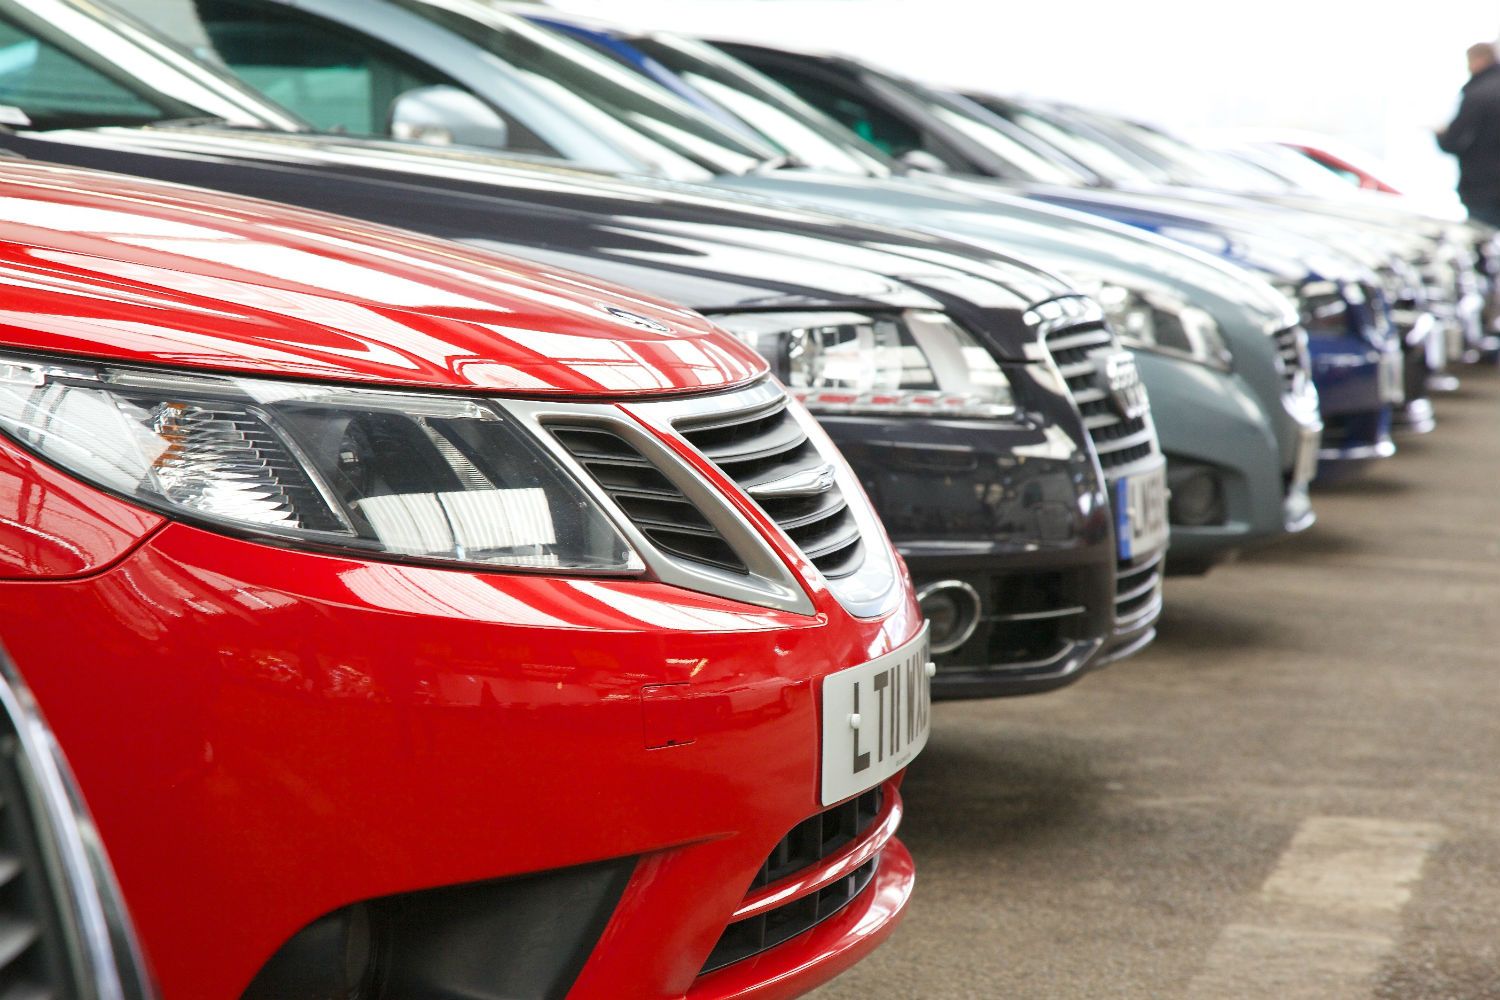 Cars parked in a row, ready for auction sales